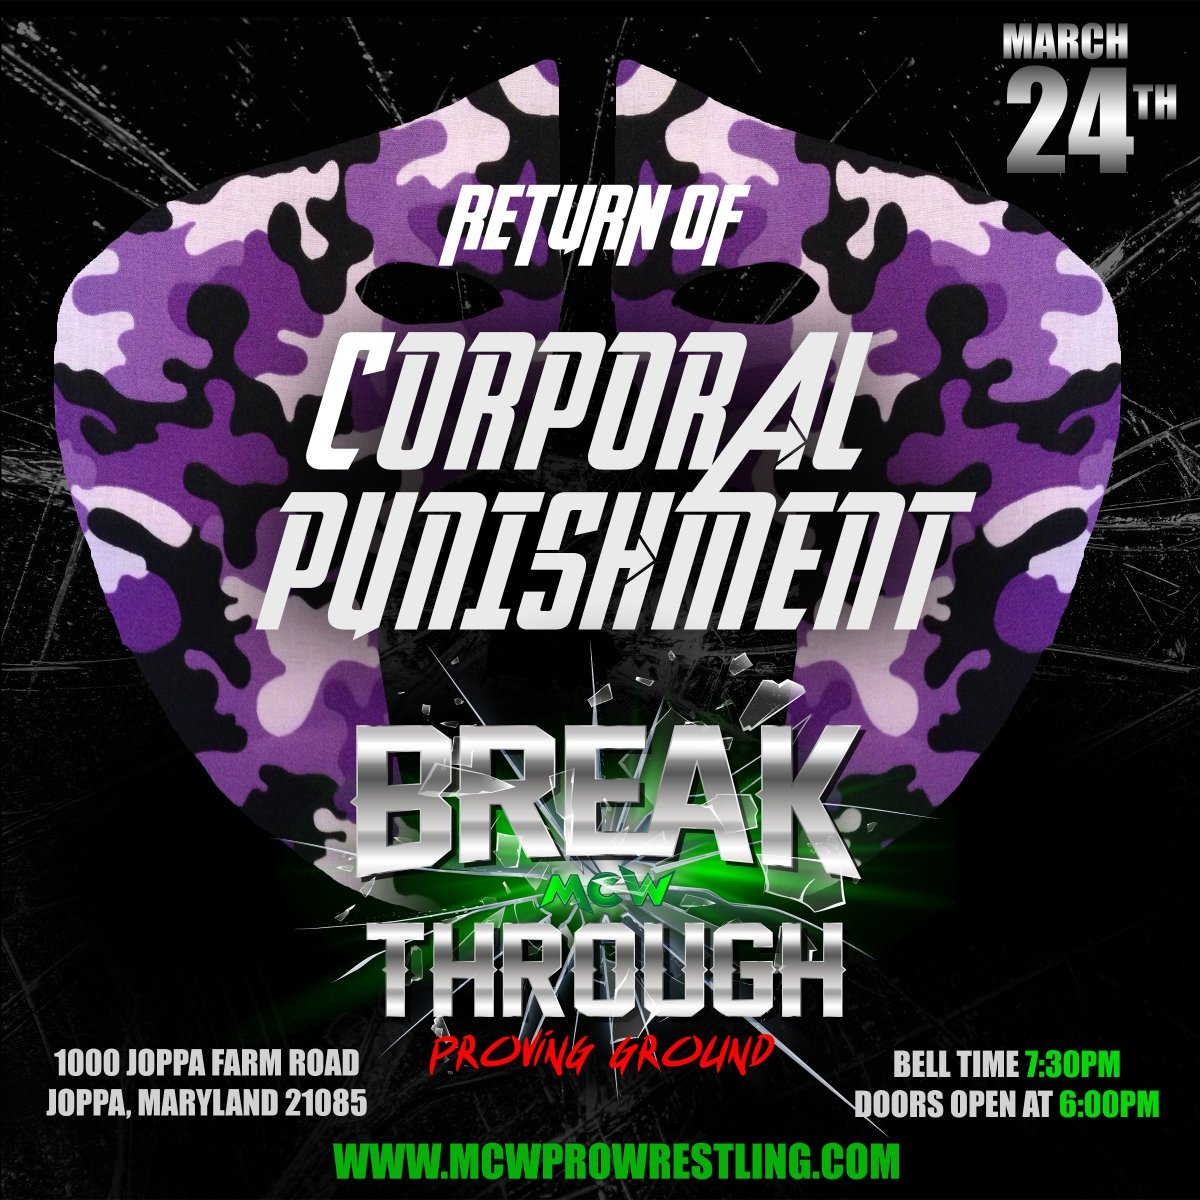 After stating that he has divested his ownership stake in #MCW, Dan McDevitt aka Corporal Punishment has vowed to dust off the camouflage 1 last time!  After an 11 year absence, The Corporal makes his return to active competition on Sat 3/24 at #MCWBreakthrough: Proving Ground!<br>http://pic.twitter.com/wOje9nTSrT